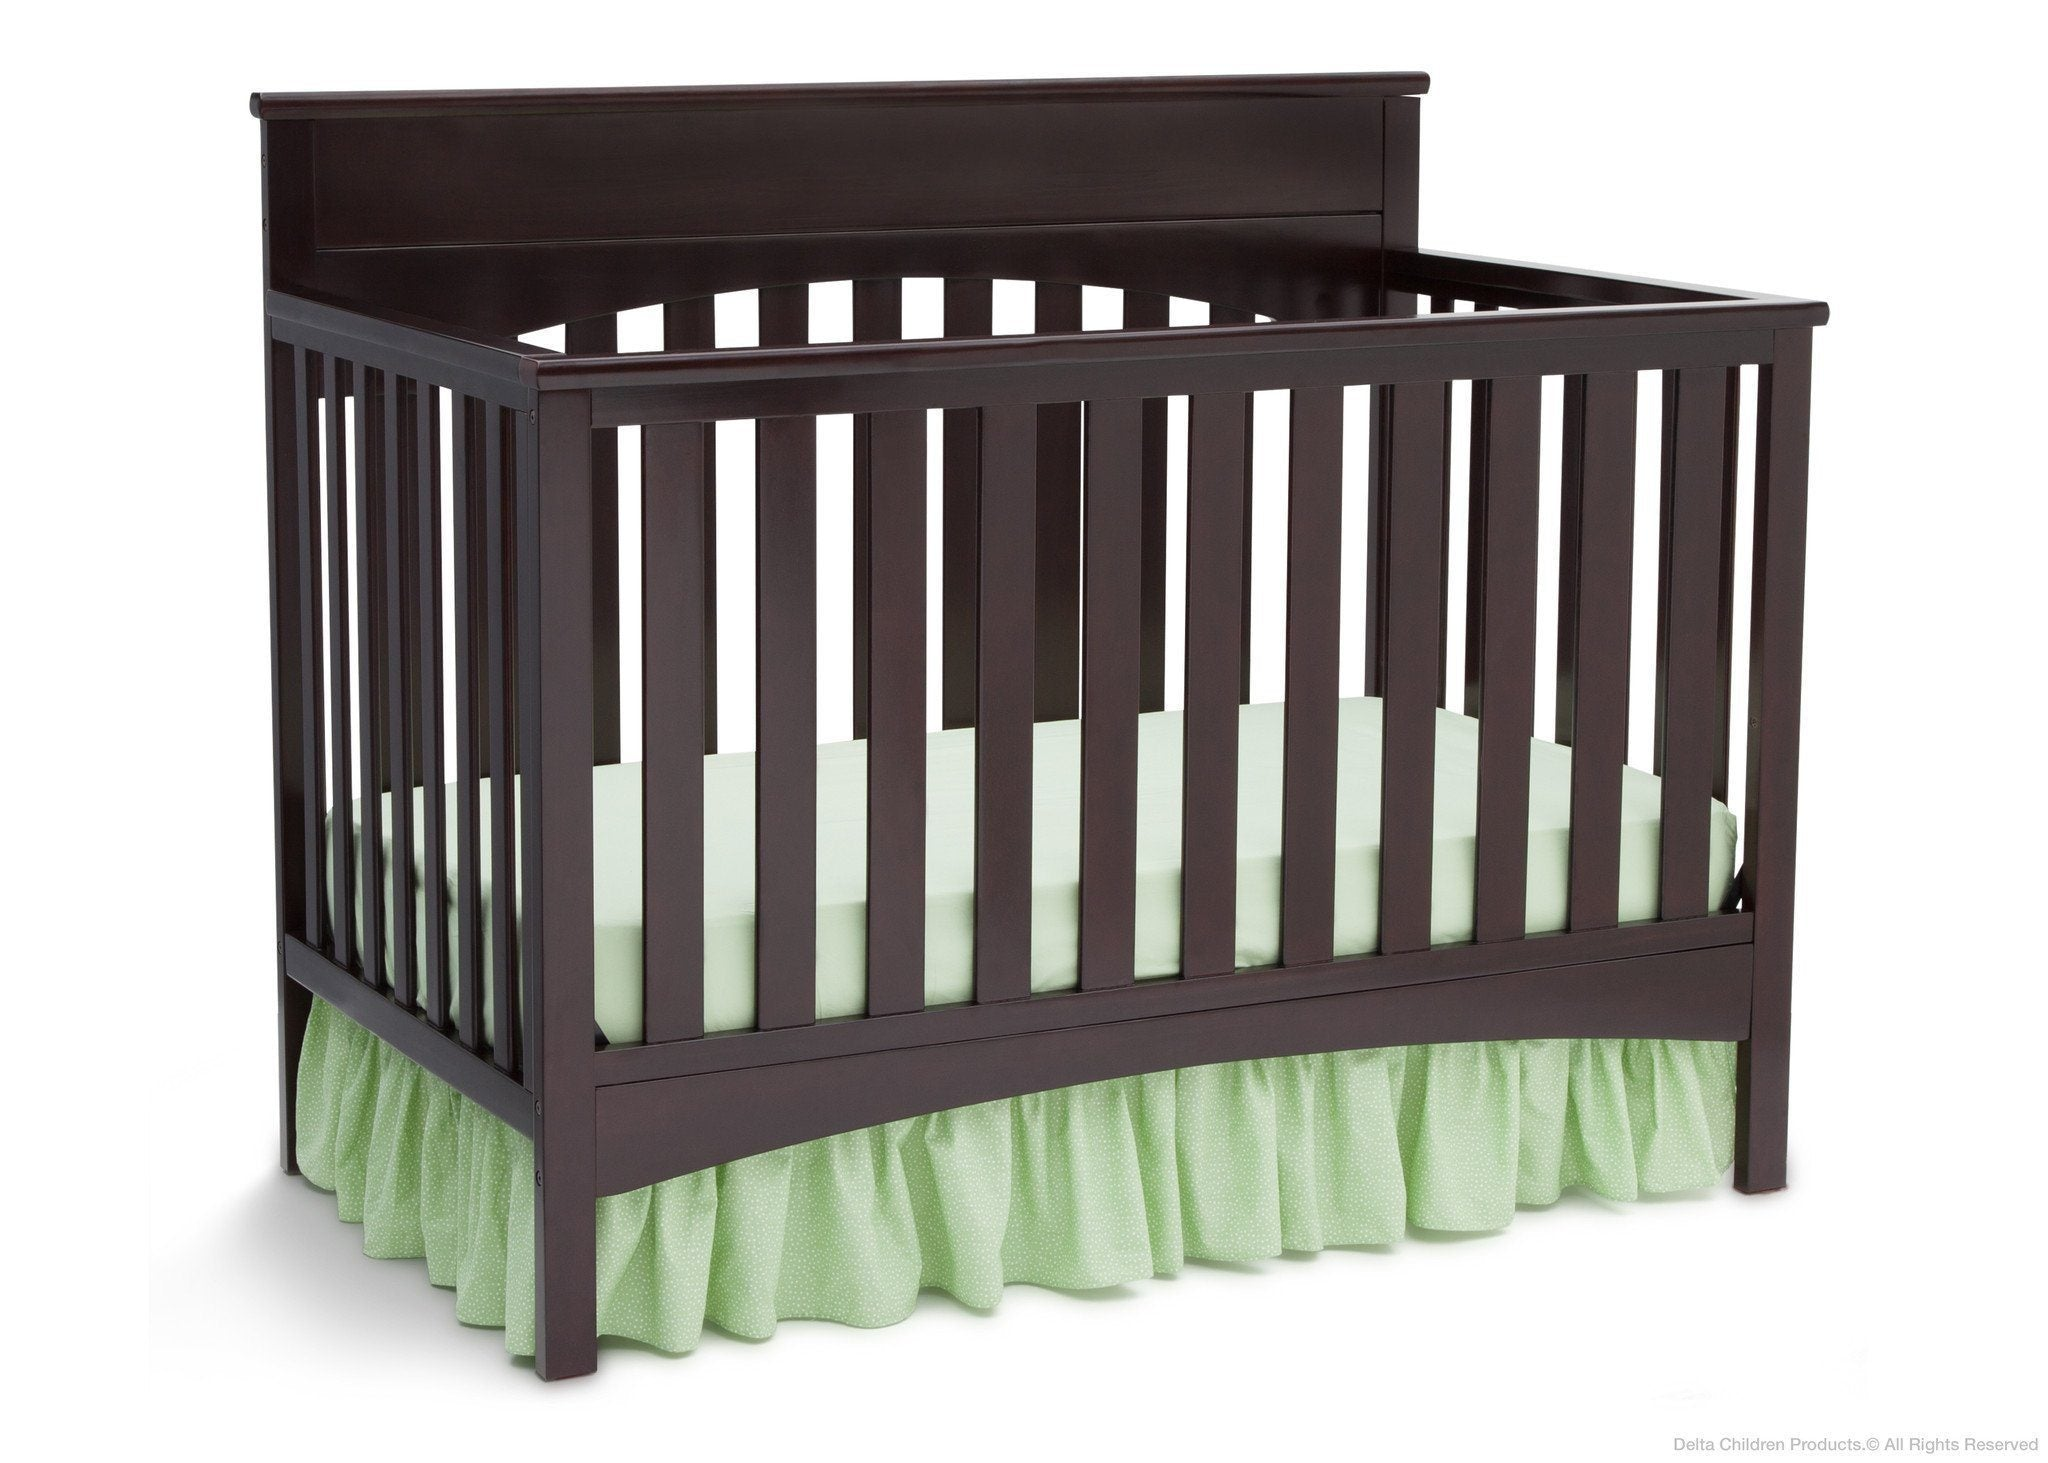 Delta Children Dark Chocolate (207) Bennington Lifestyle 4-in-1 Crib, Crib Conversion b2b